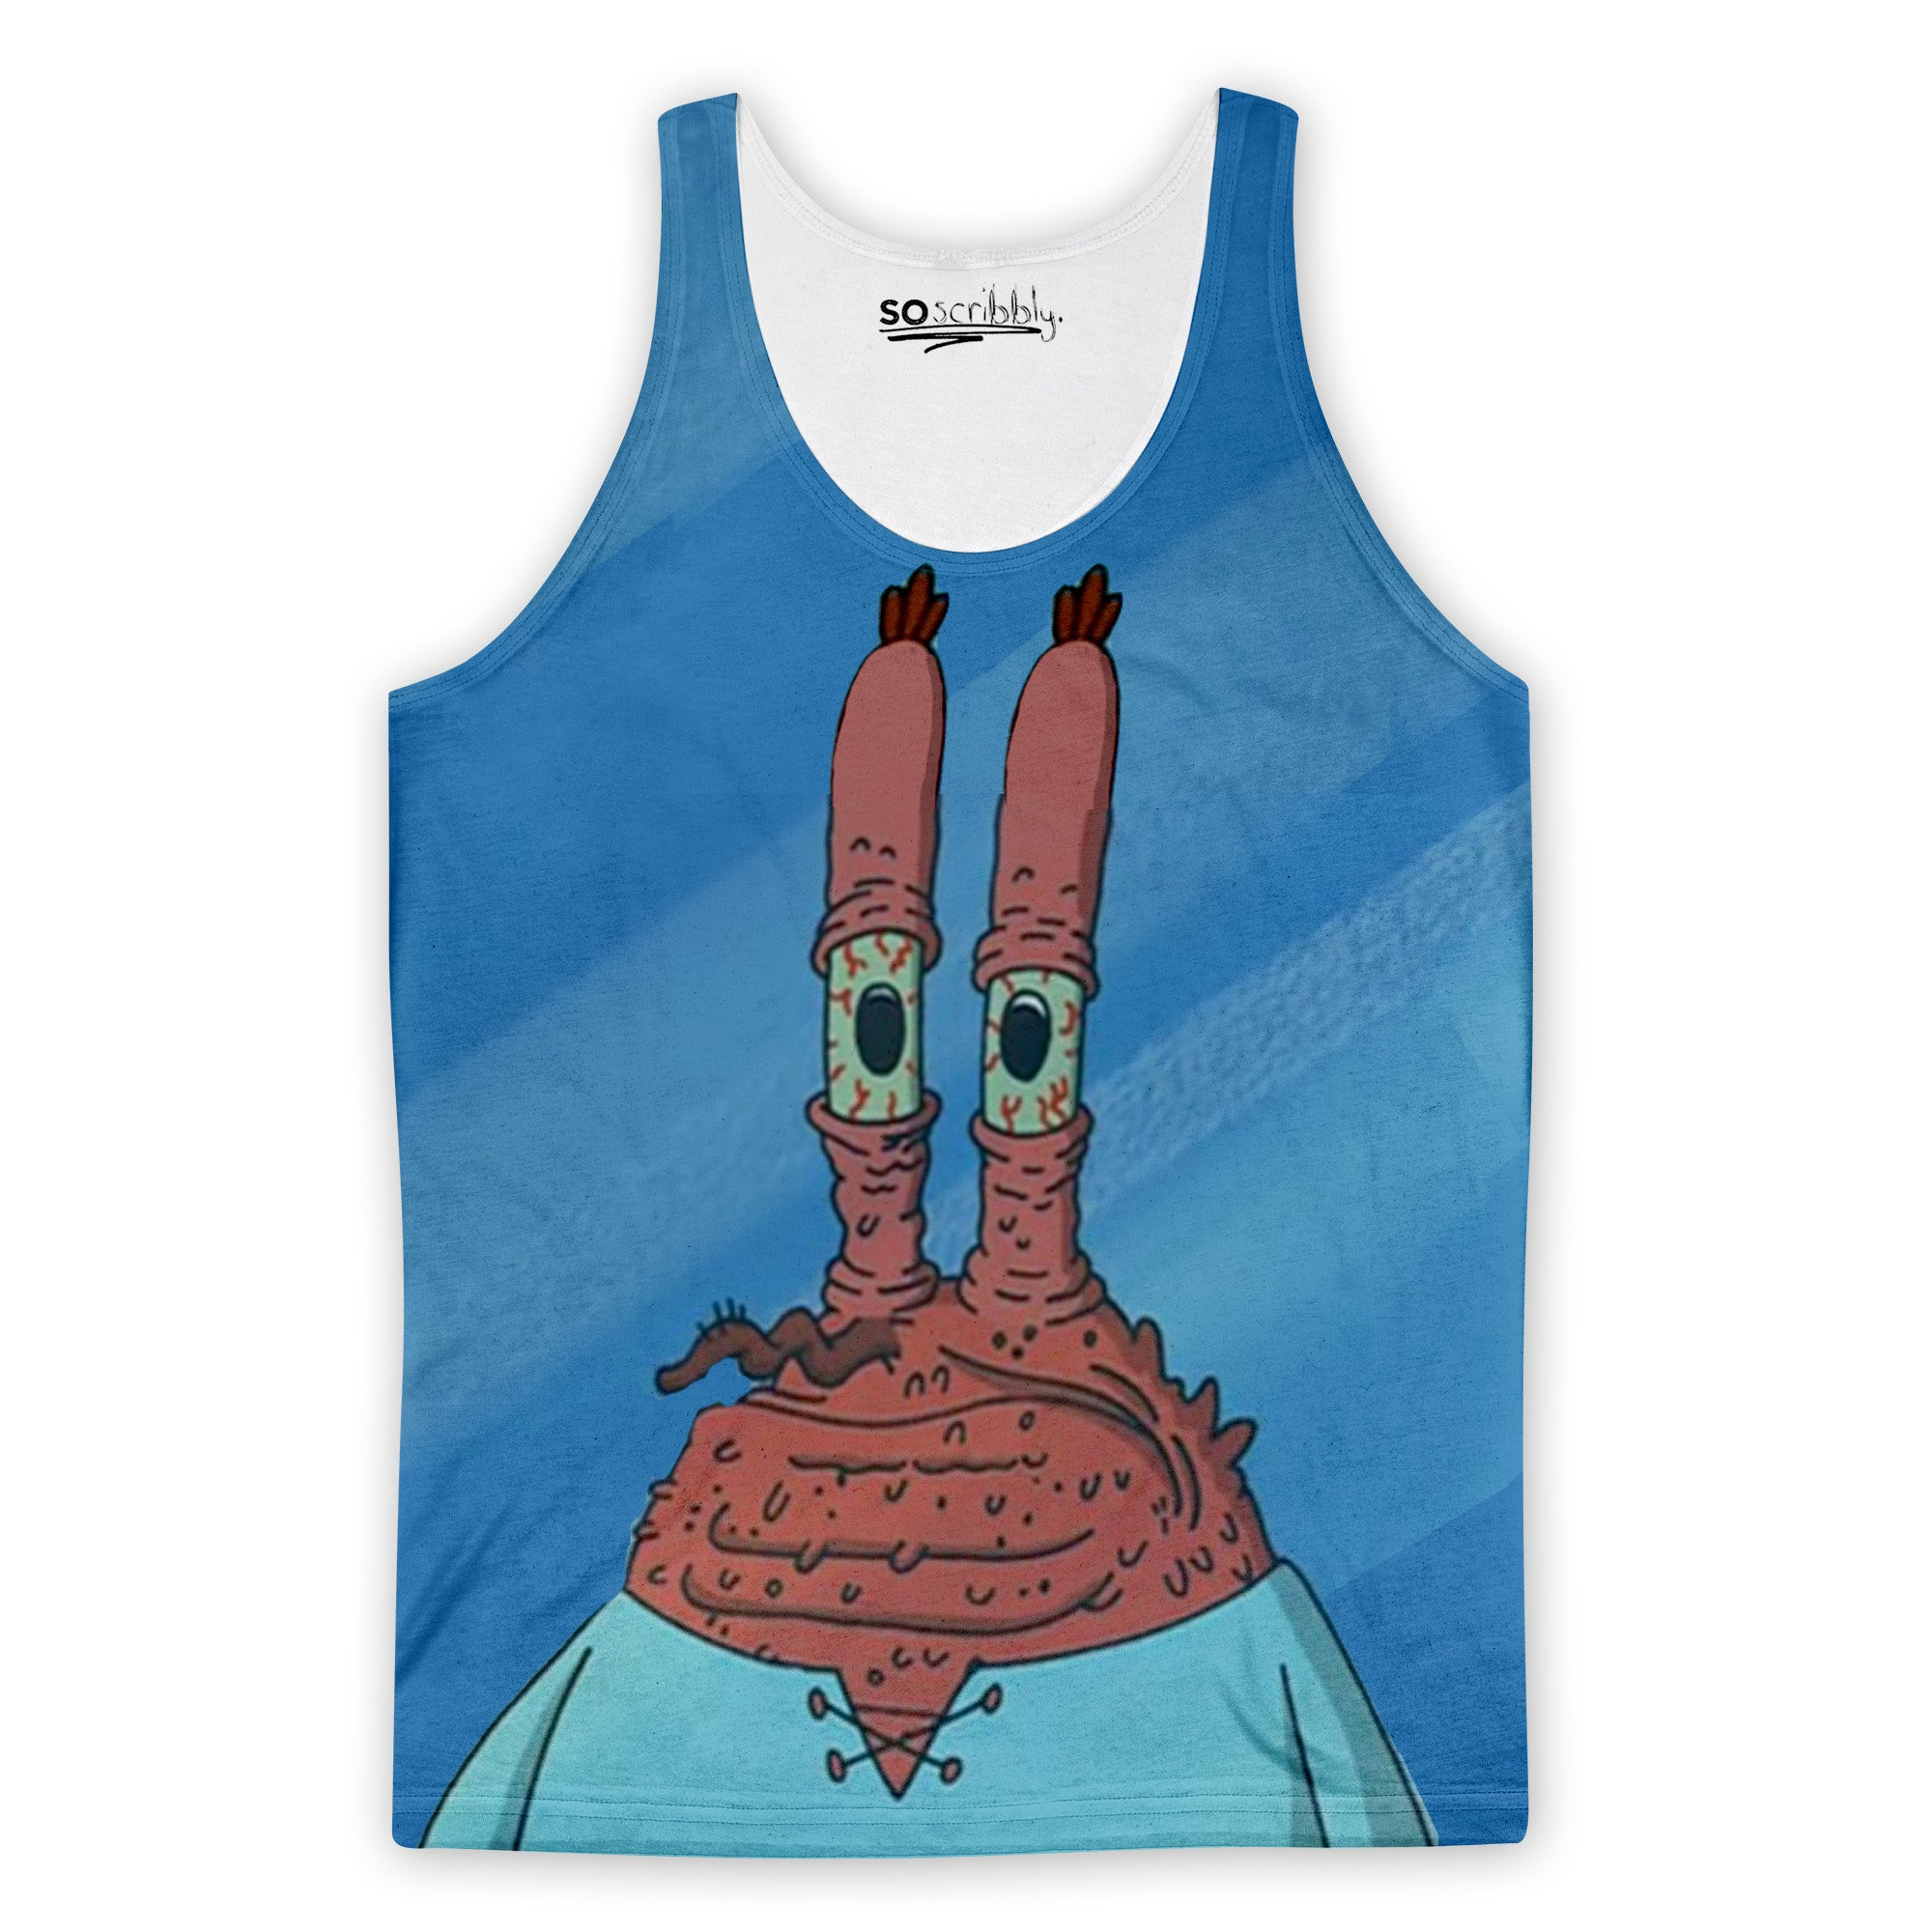 Mr. Krabs Looking Old Tank Top